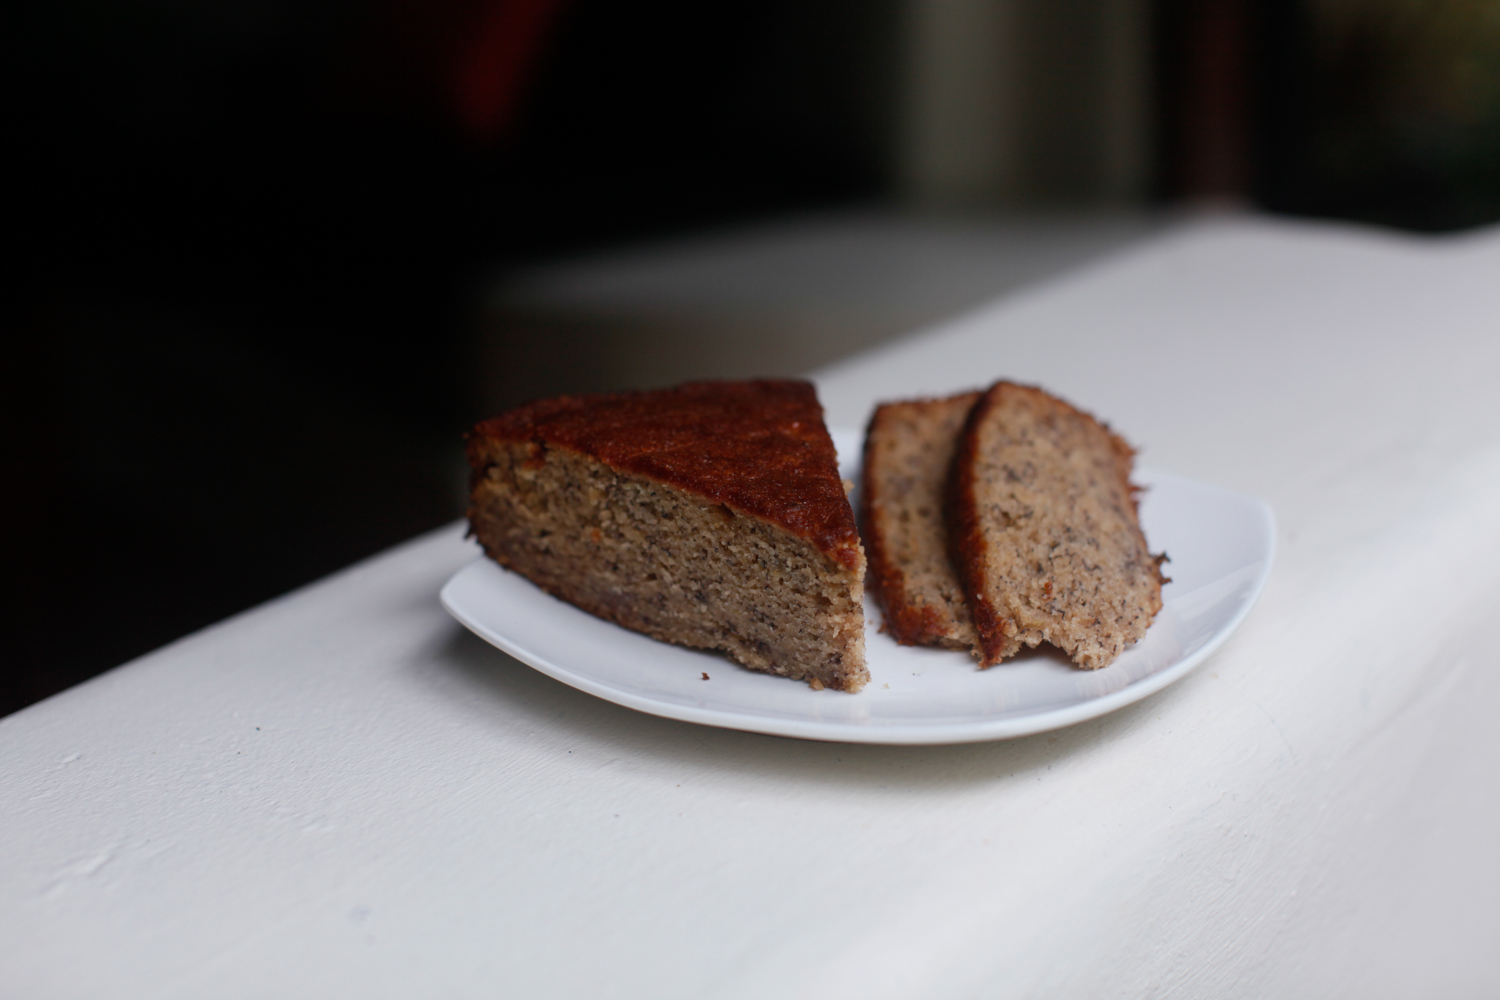 Banana bread. Perfect with your morning coffee.